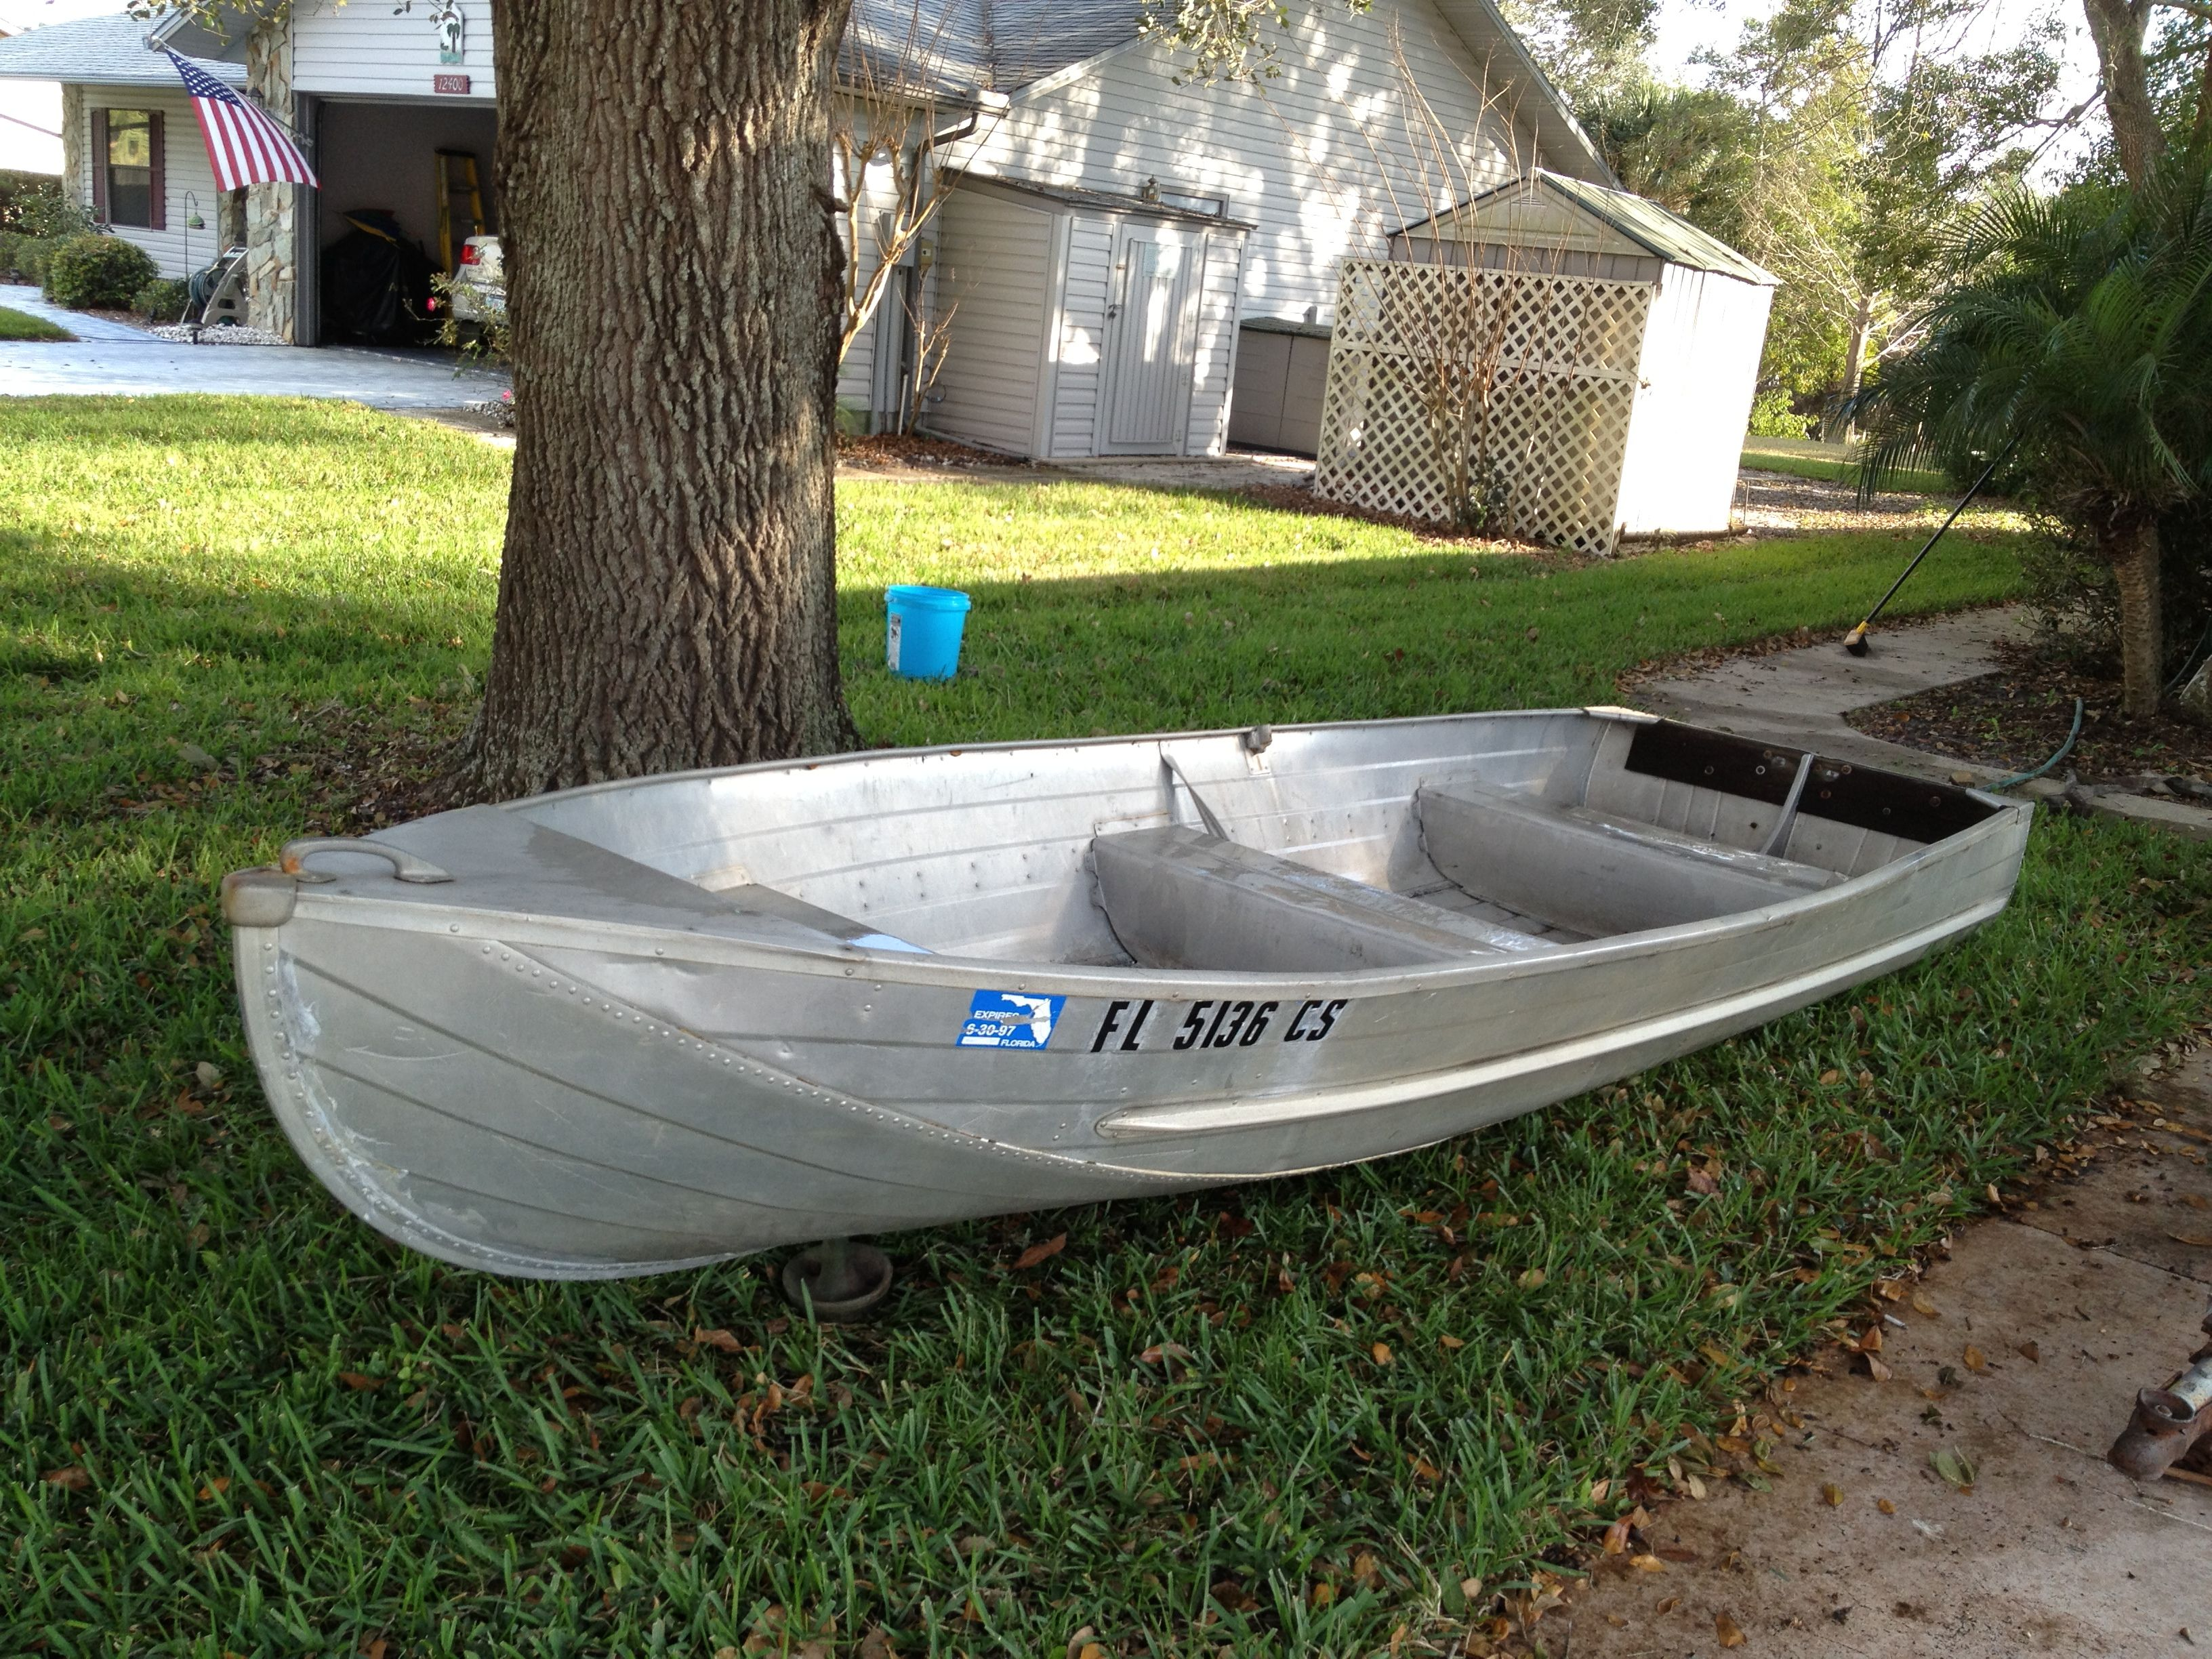 Nice polished 14 39 aluminum jon boat perfect for florida for Nice fishing boats